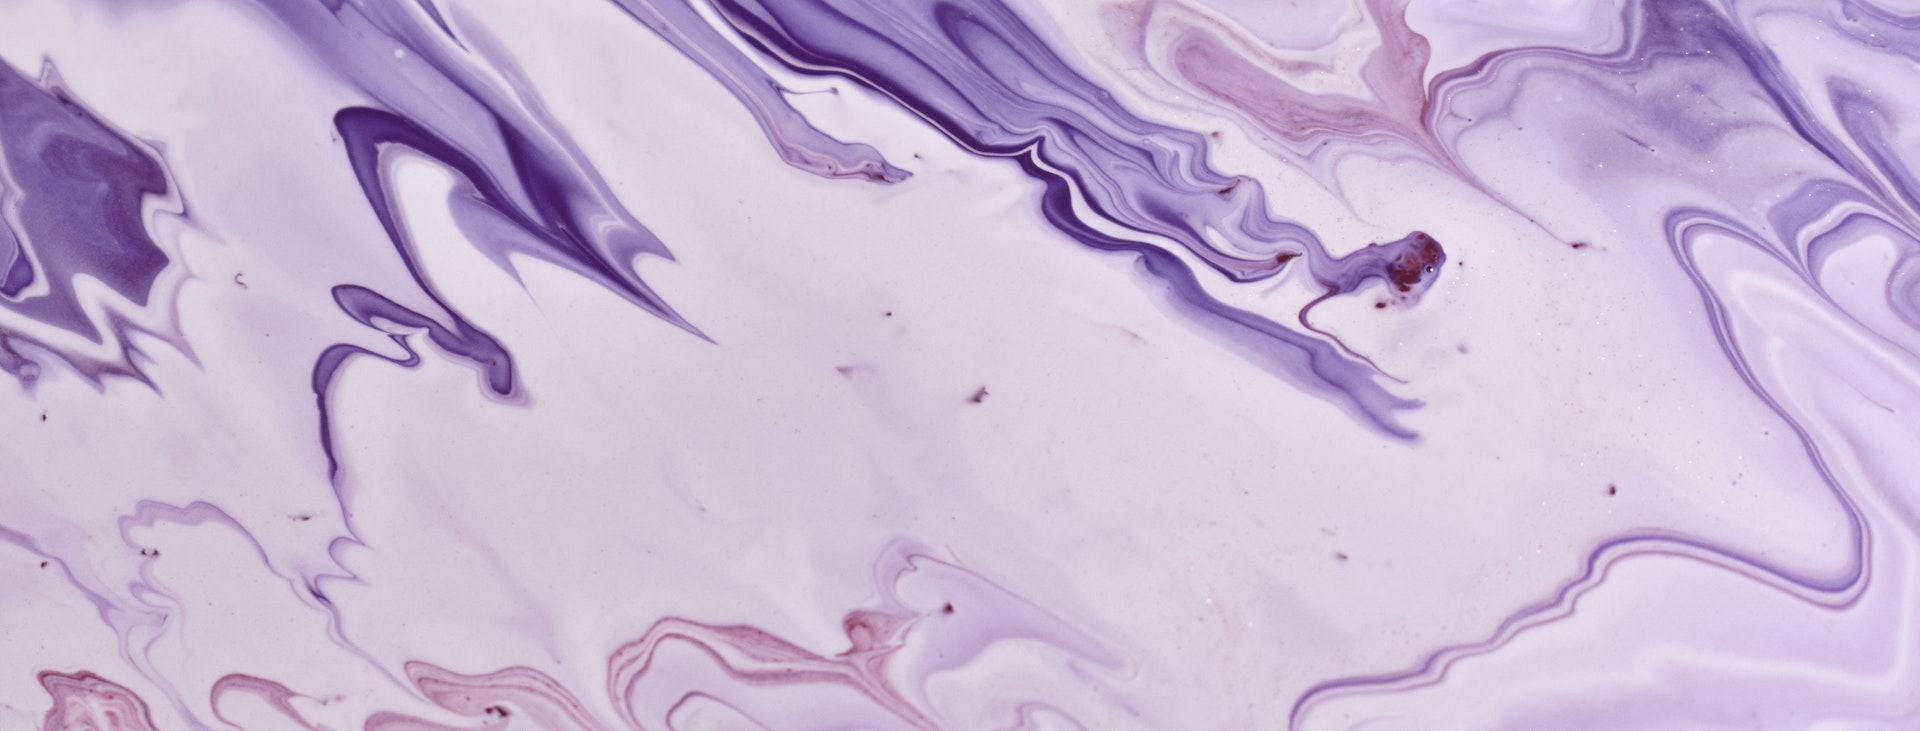 Purple abstract paint swirl